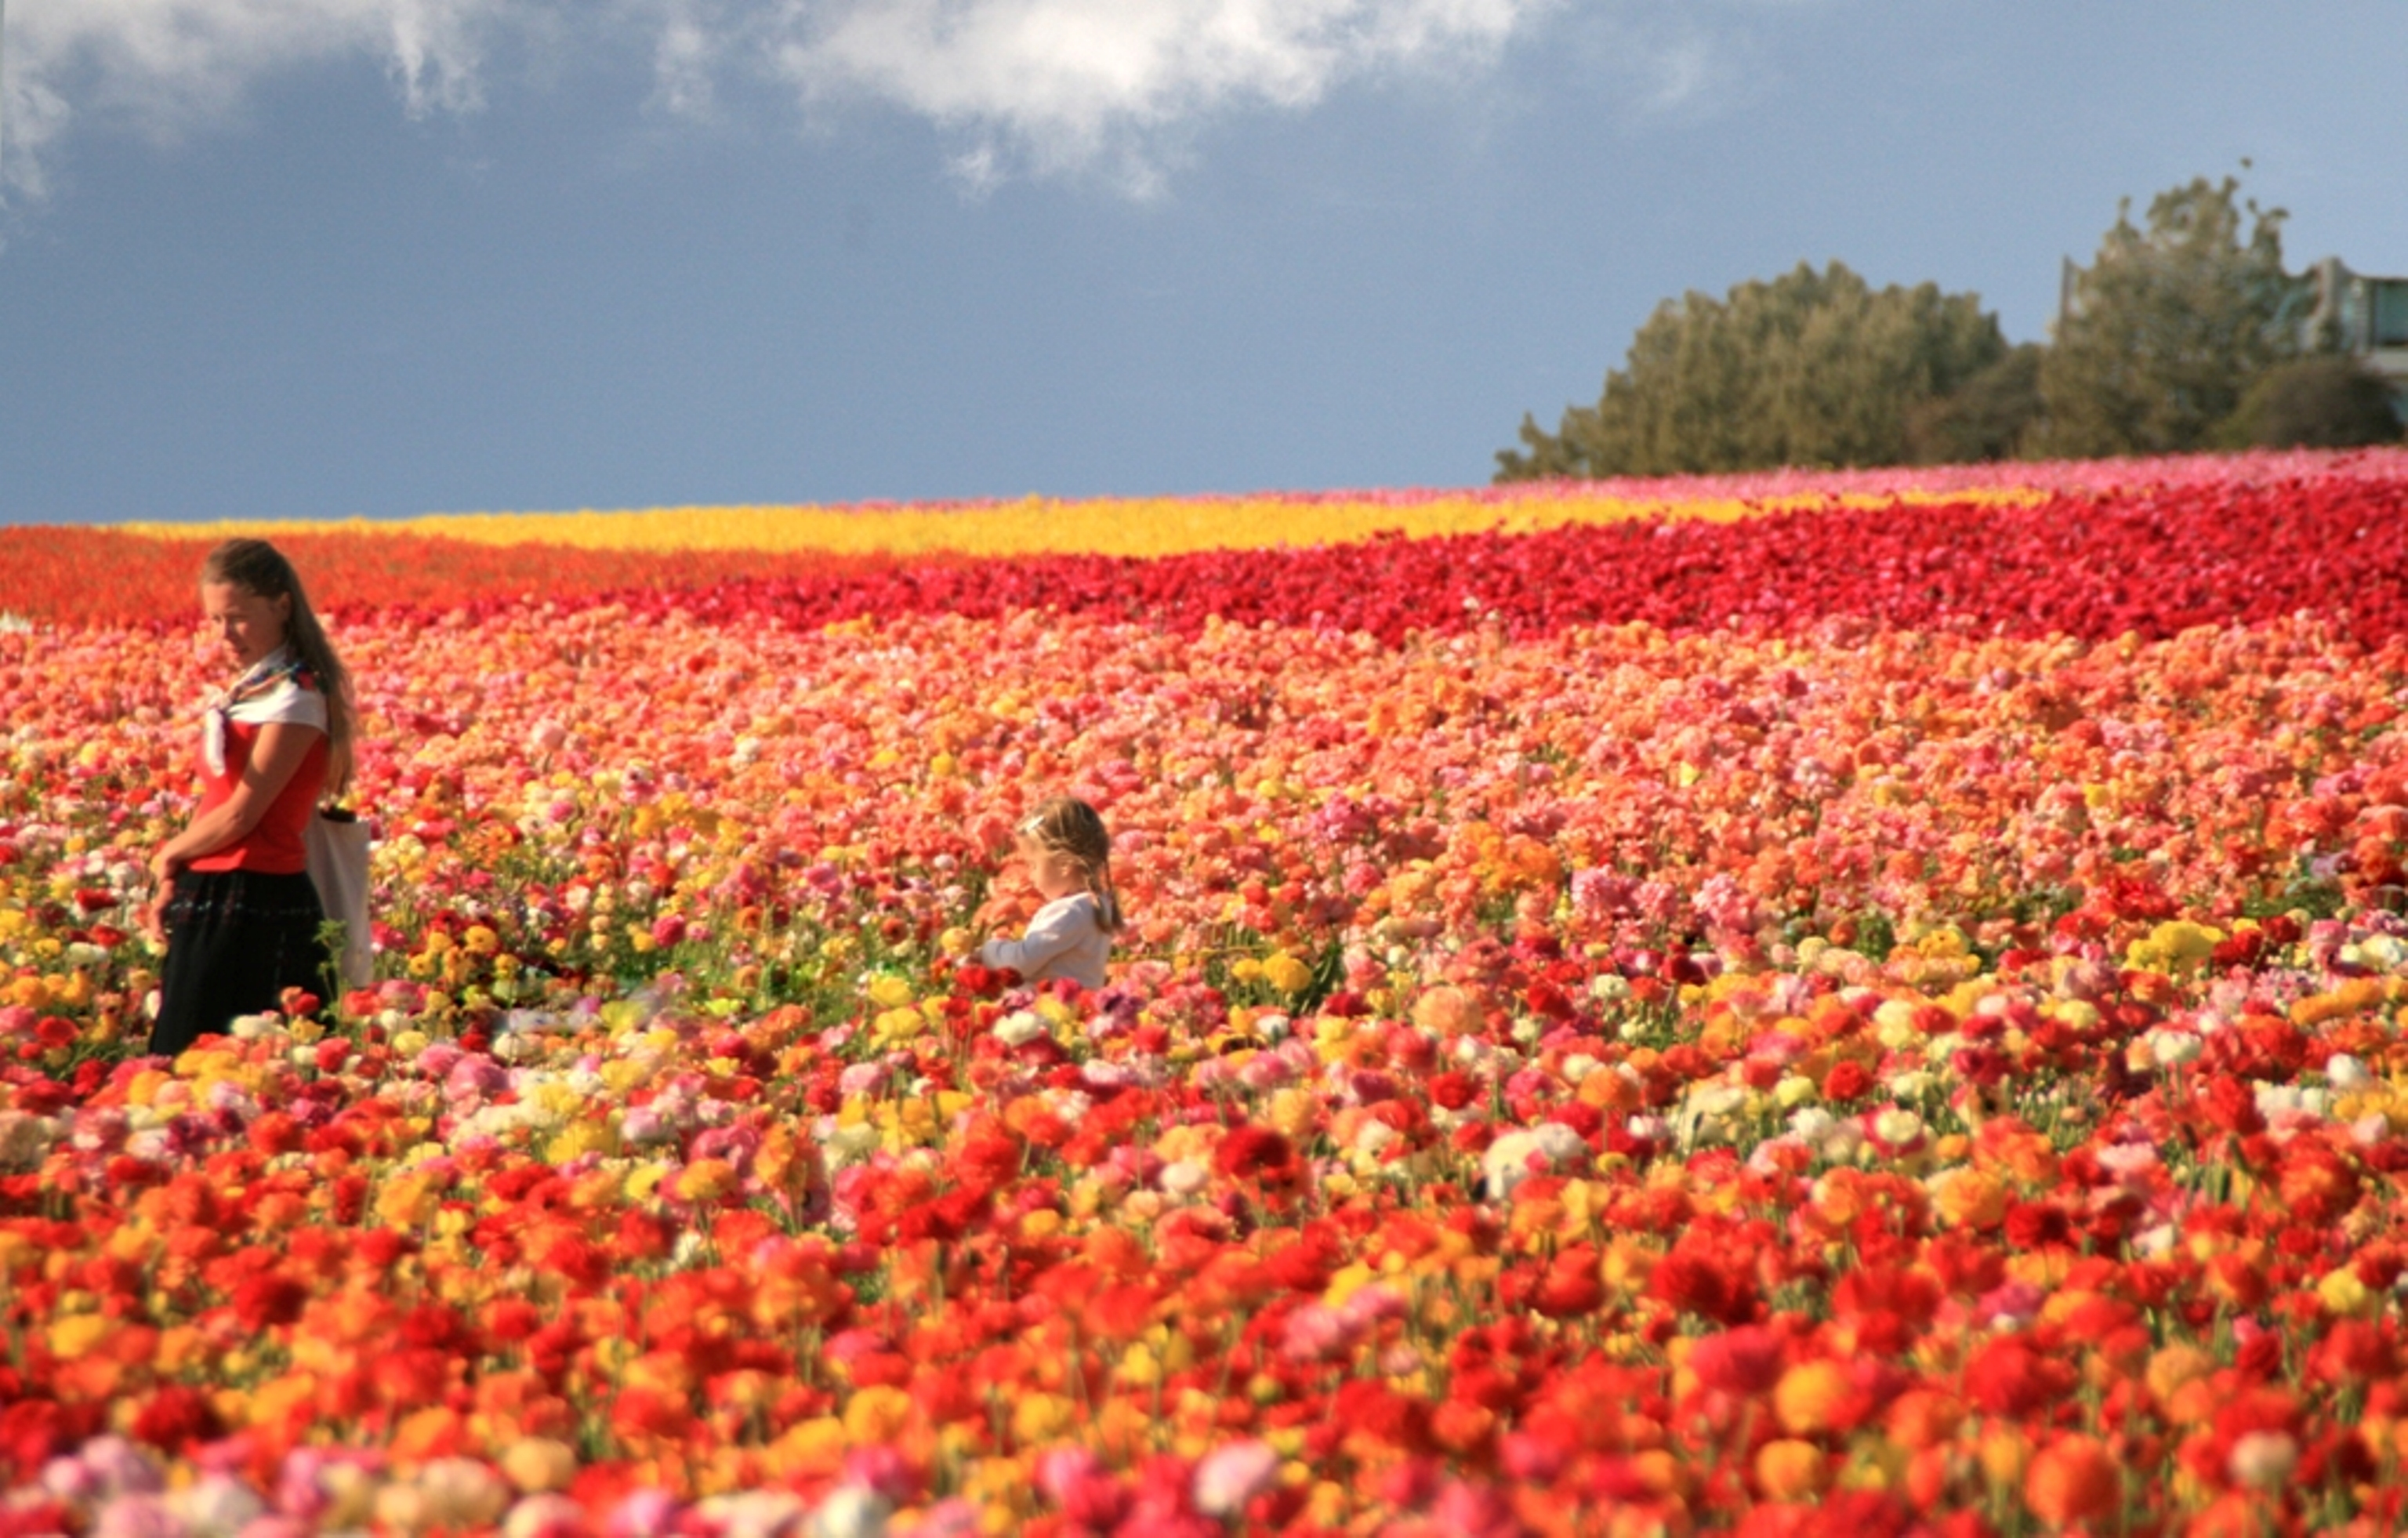 The Flower Fields of Carlsbad Ranch - Top Things to Do in San Diego